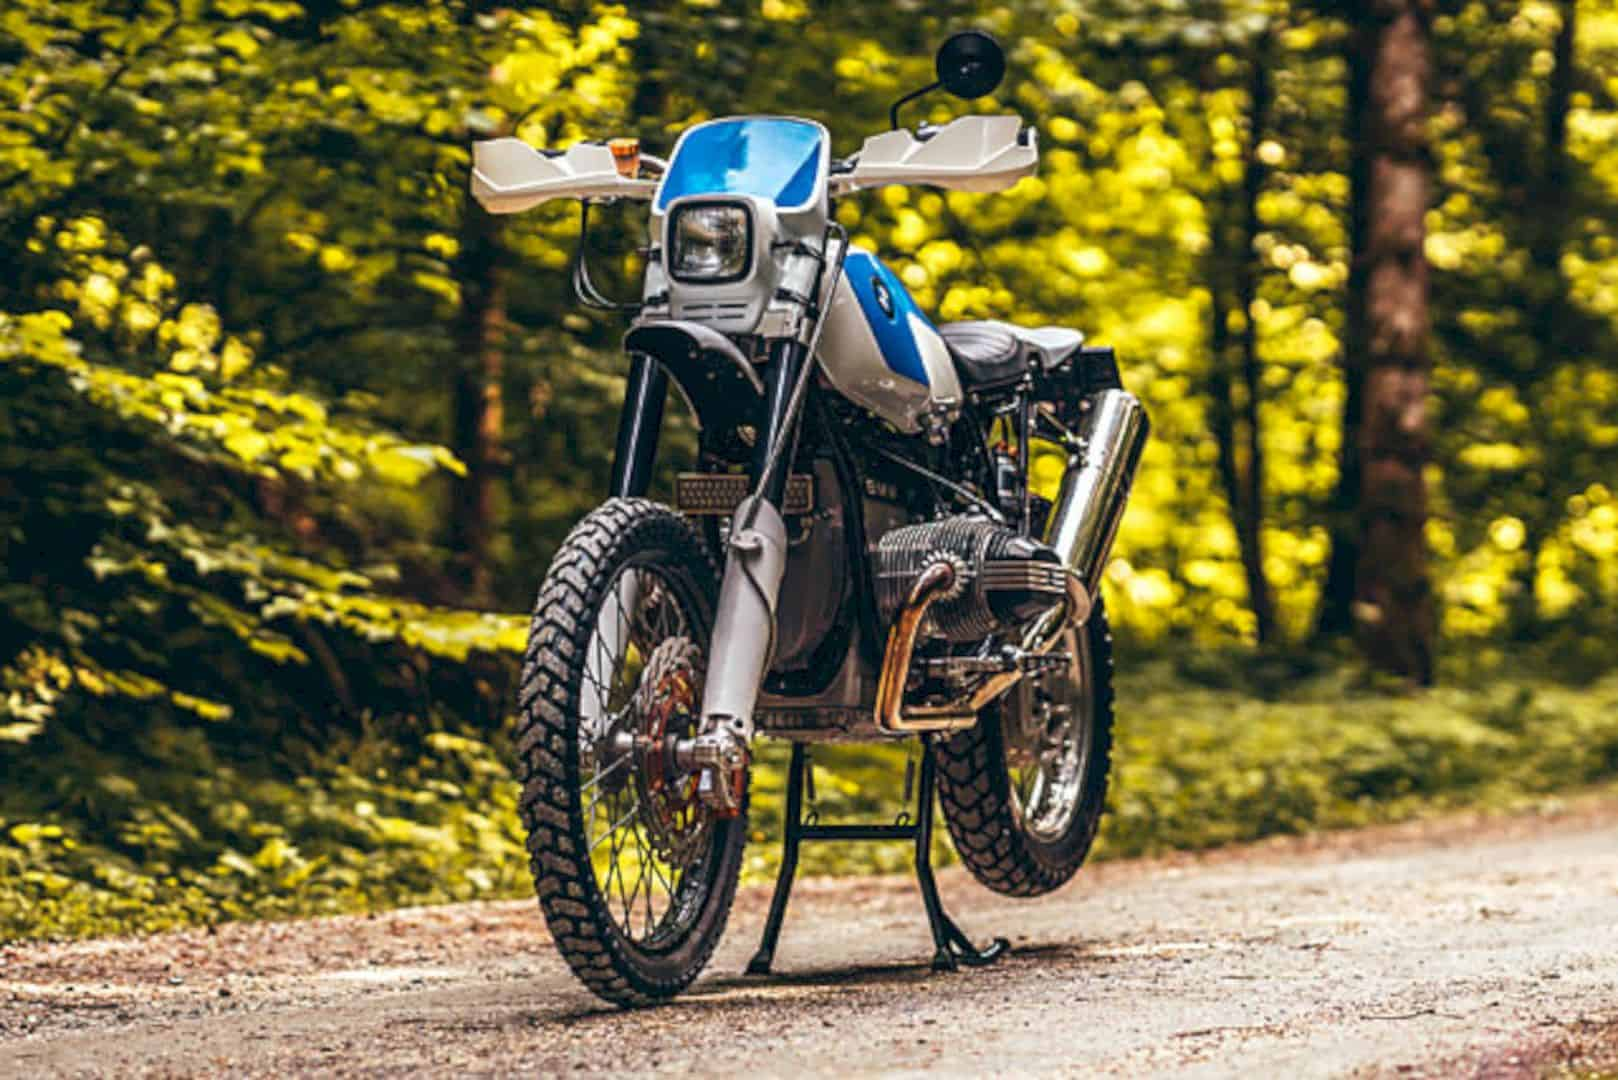 Bmw R80gs Enduro By Nct Motorcycles 6